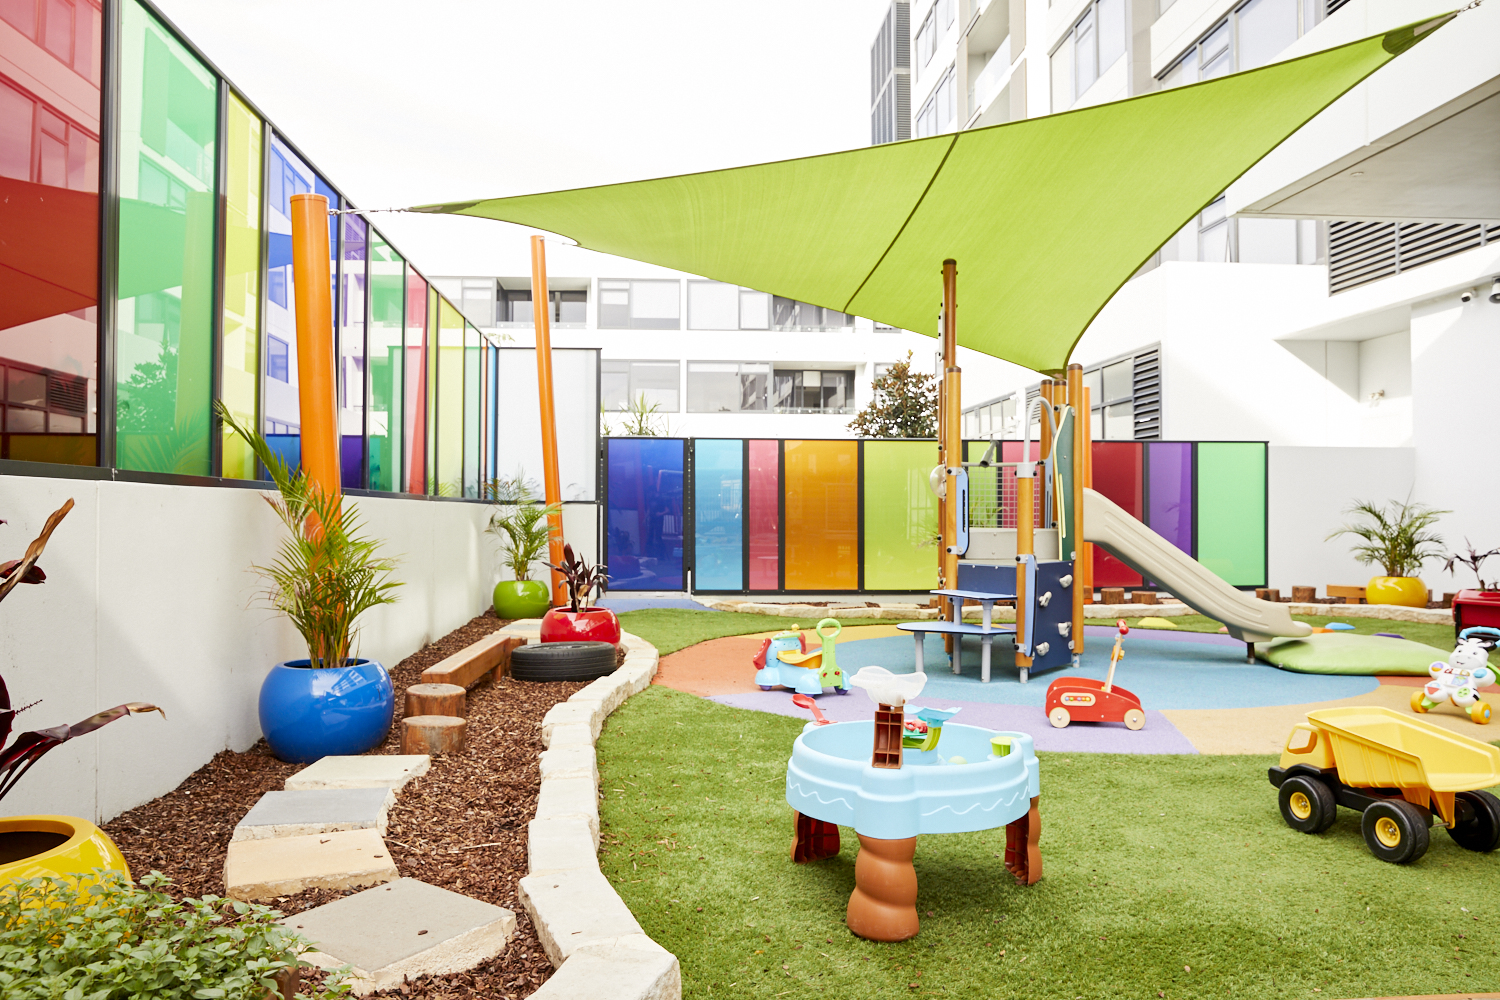 Outdoor childrens play area at Papilio Rosebery